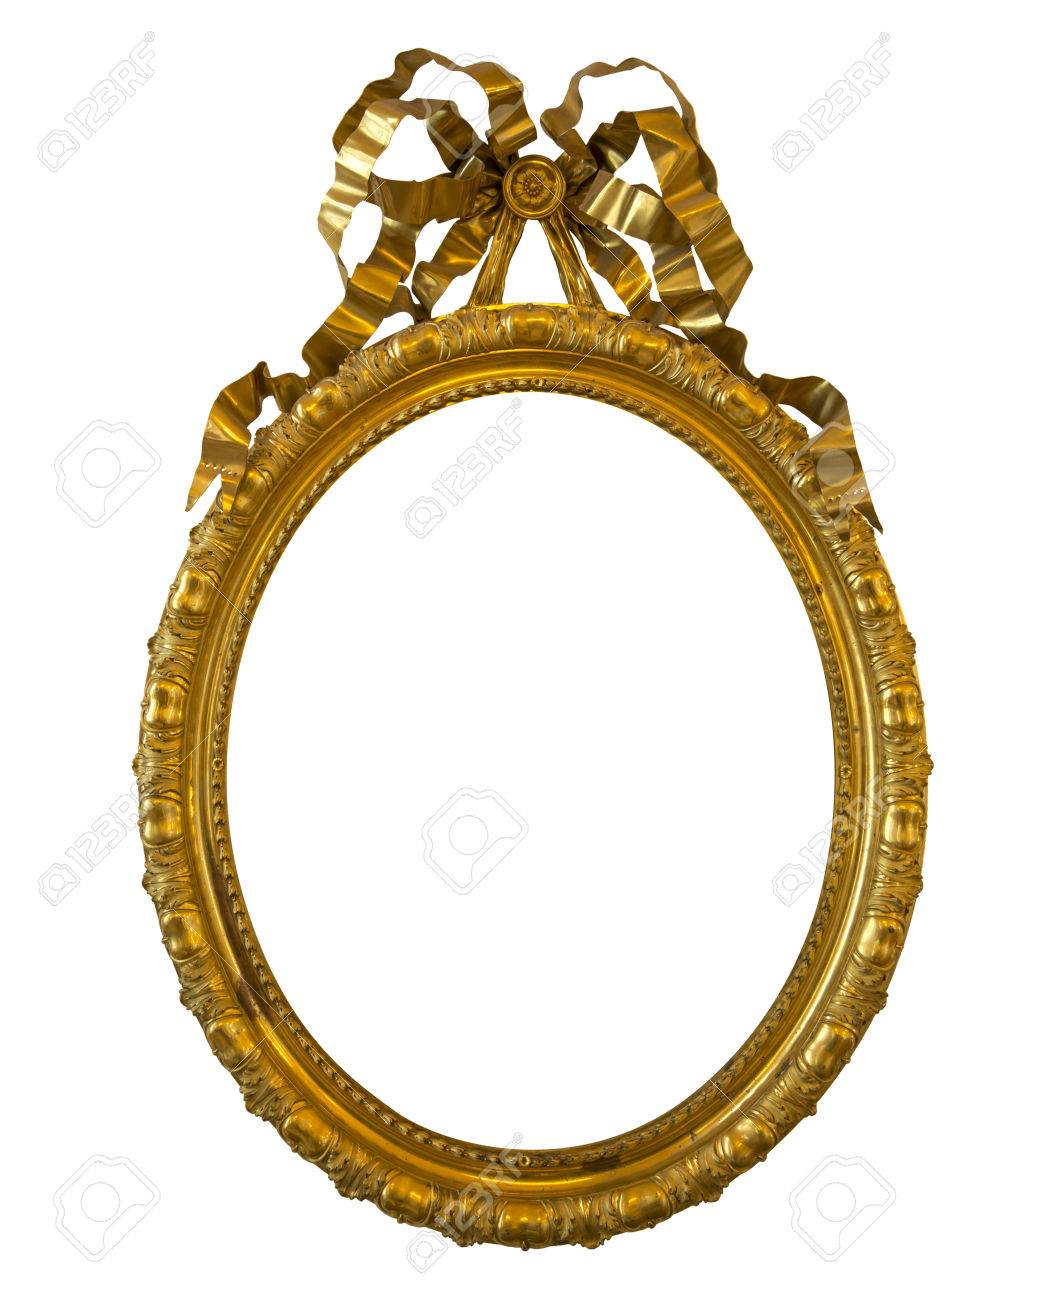 Antique Oval Golden Frame Isolated On White Background Stock Photo ...